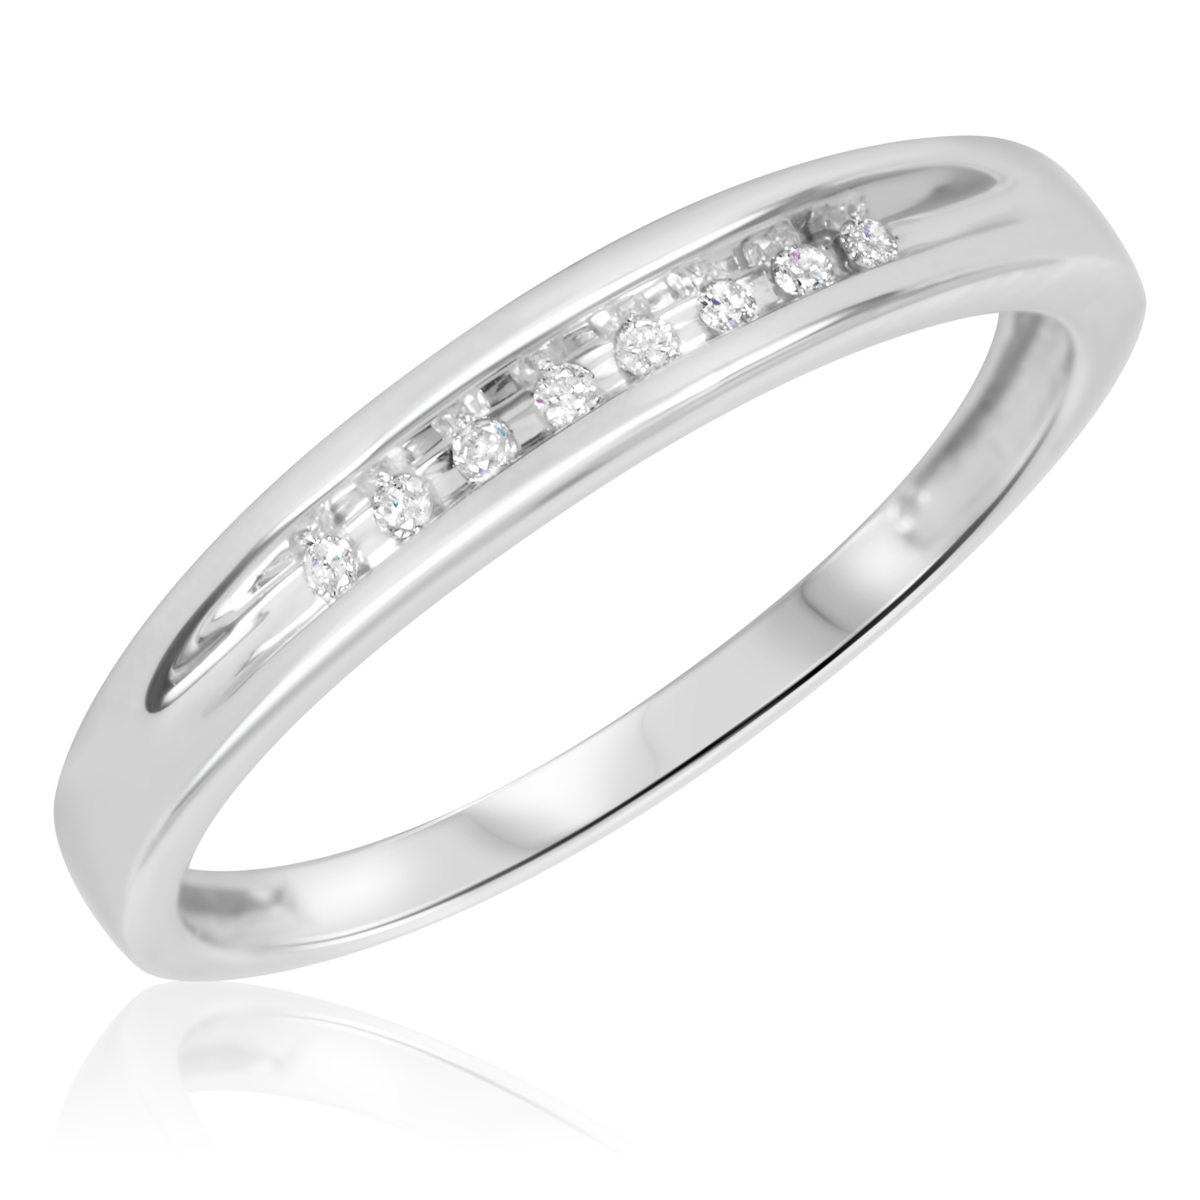 1/20 Carat T.W. Round Cut Diamond Ladies Wedding Band 10K White Gold- Size 8